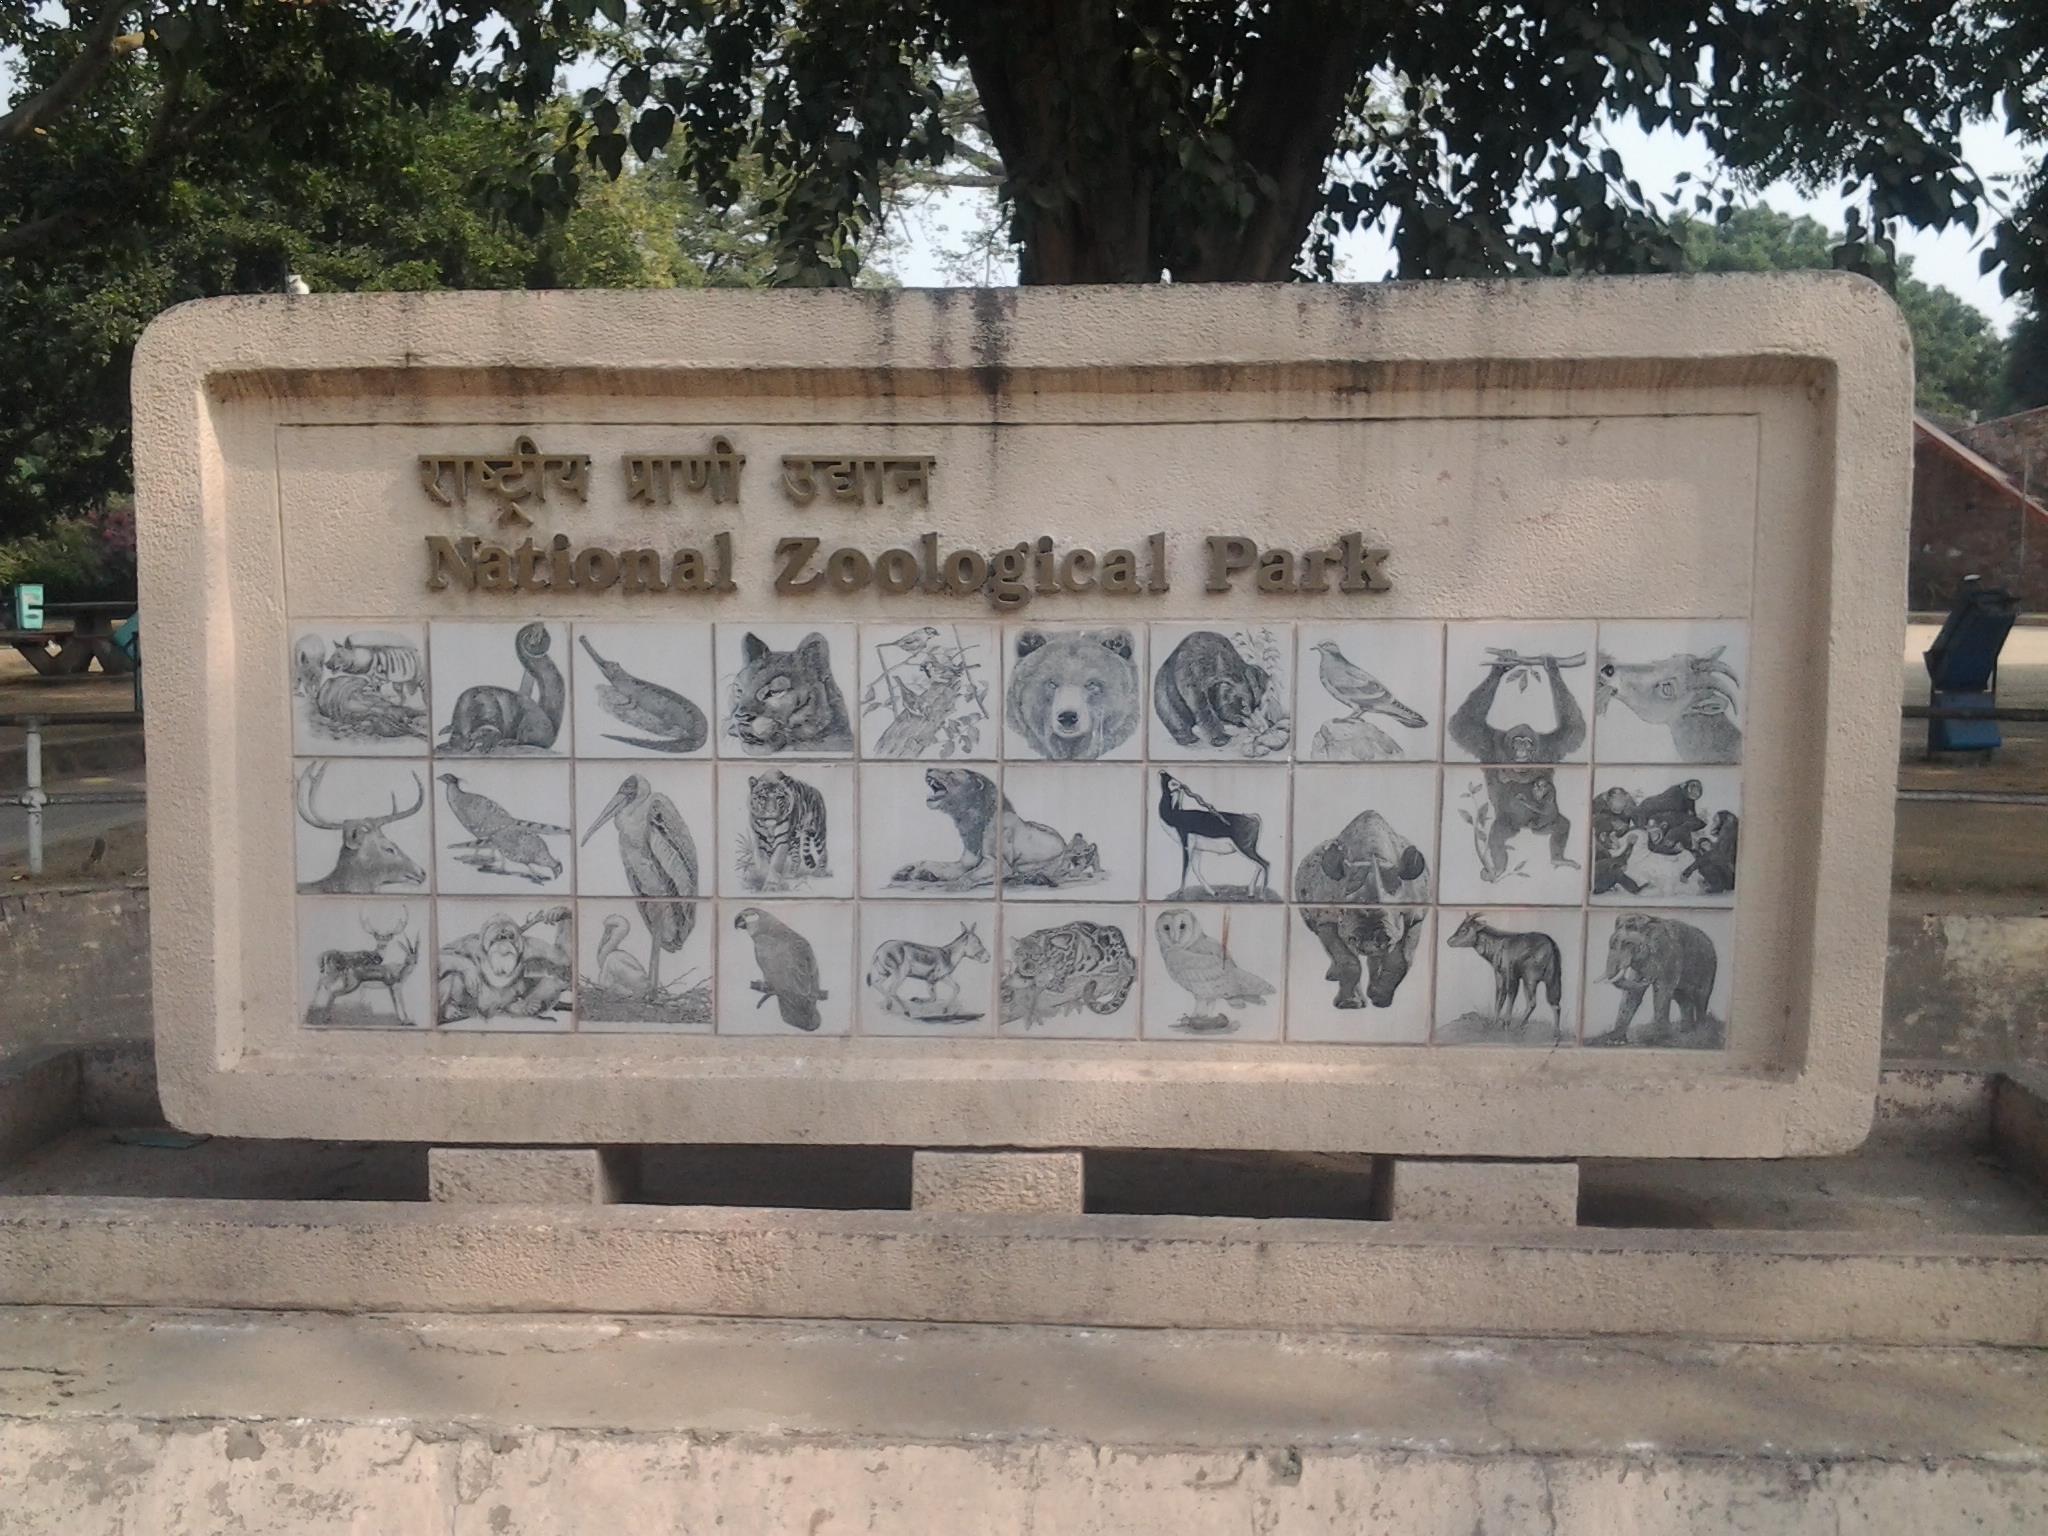 National Zoological Park - Delhi Image